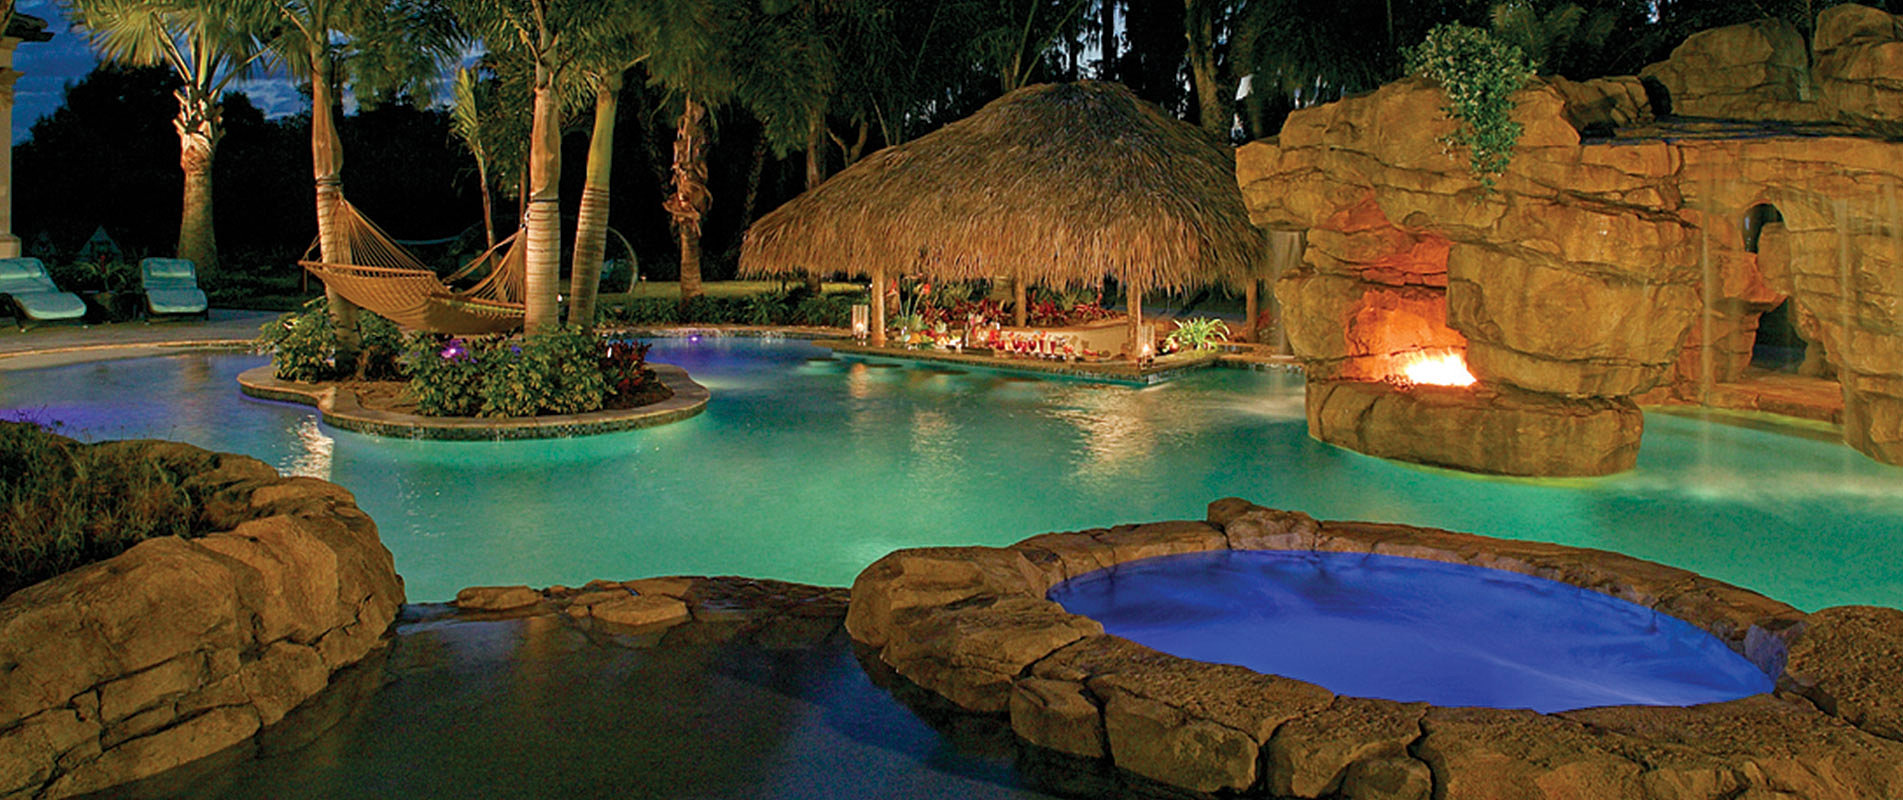 Custom luxury pools in central florida by southern pool for Unique swimming pool designs